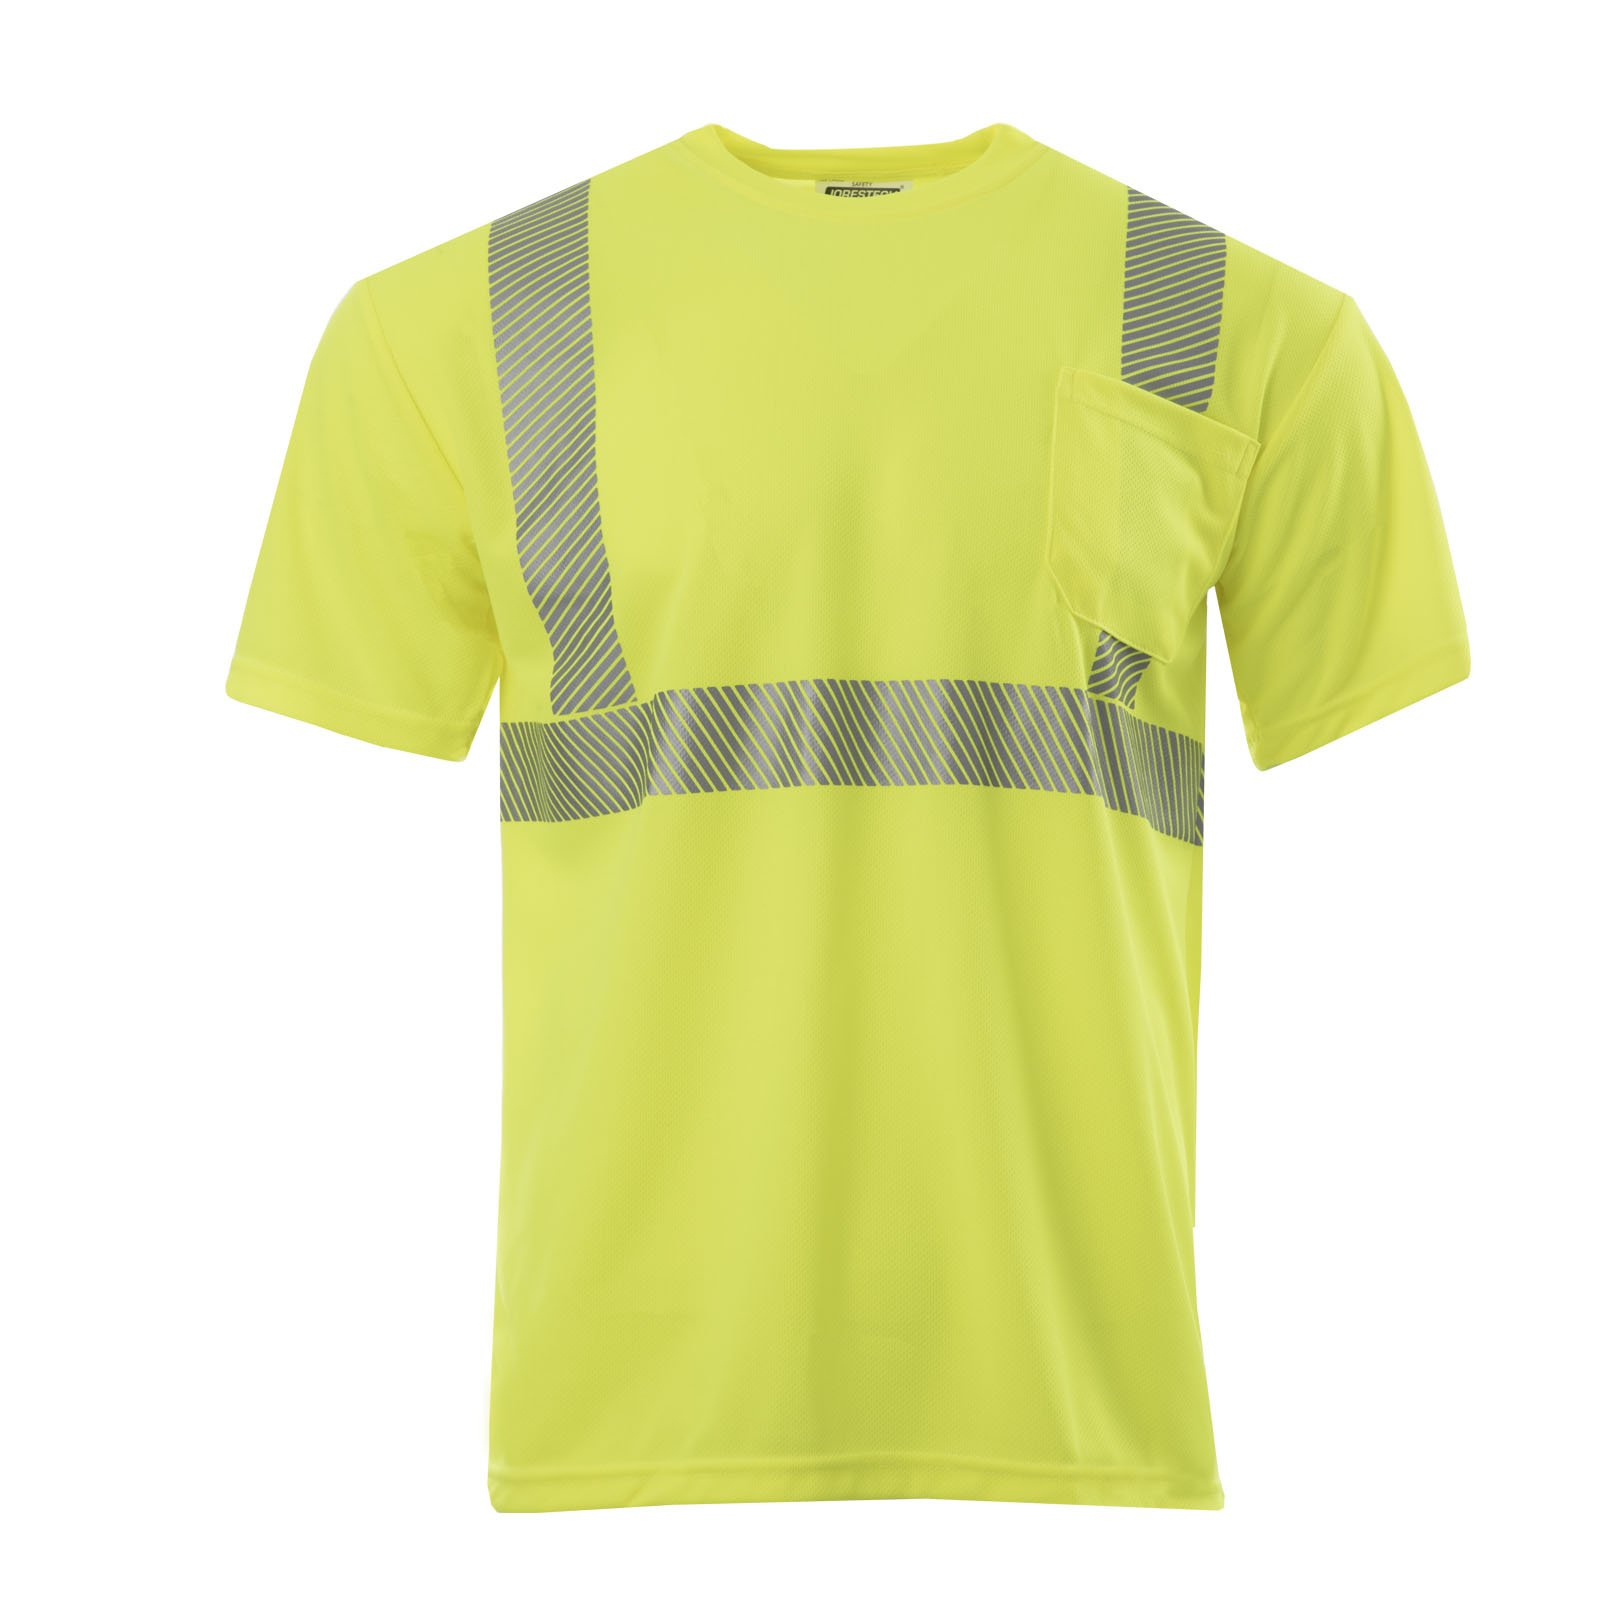 JORESTECH High Visibility Safety short sleeve shirt (Extra Large, Lime)